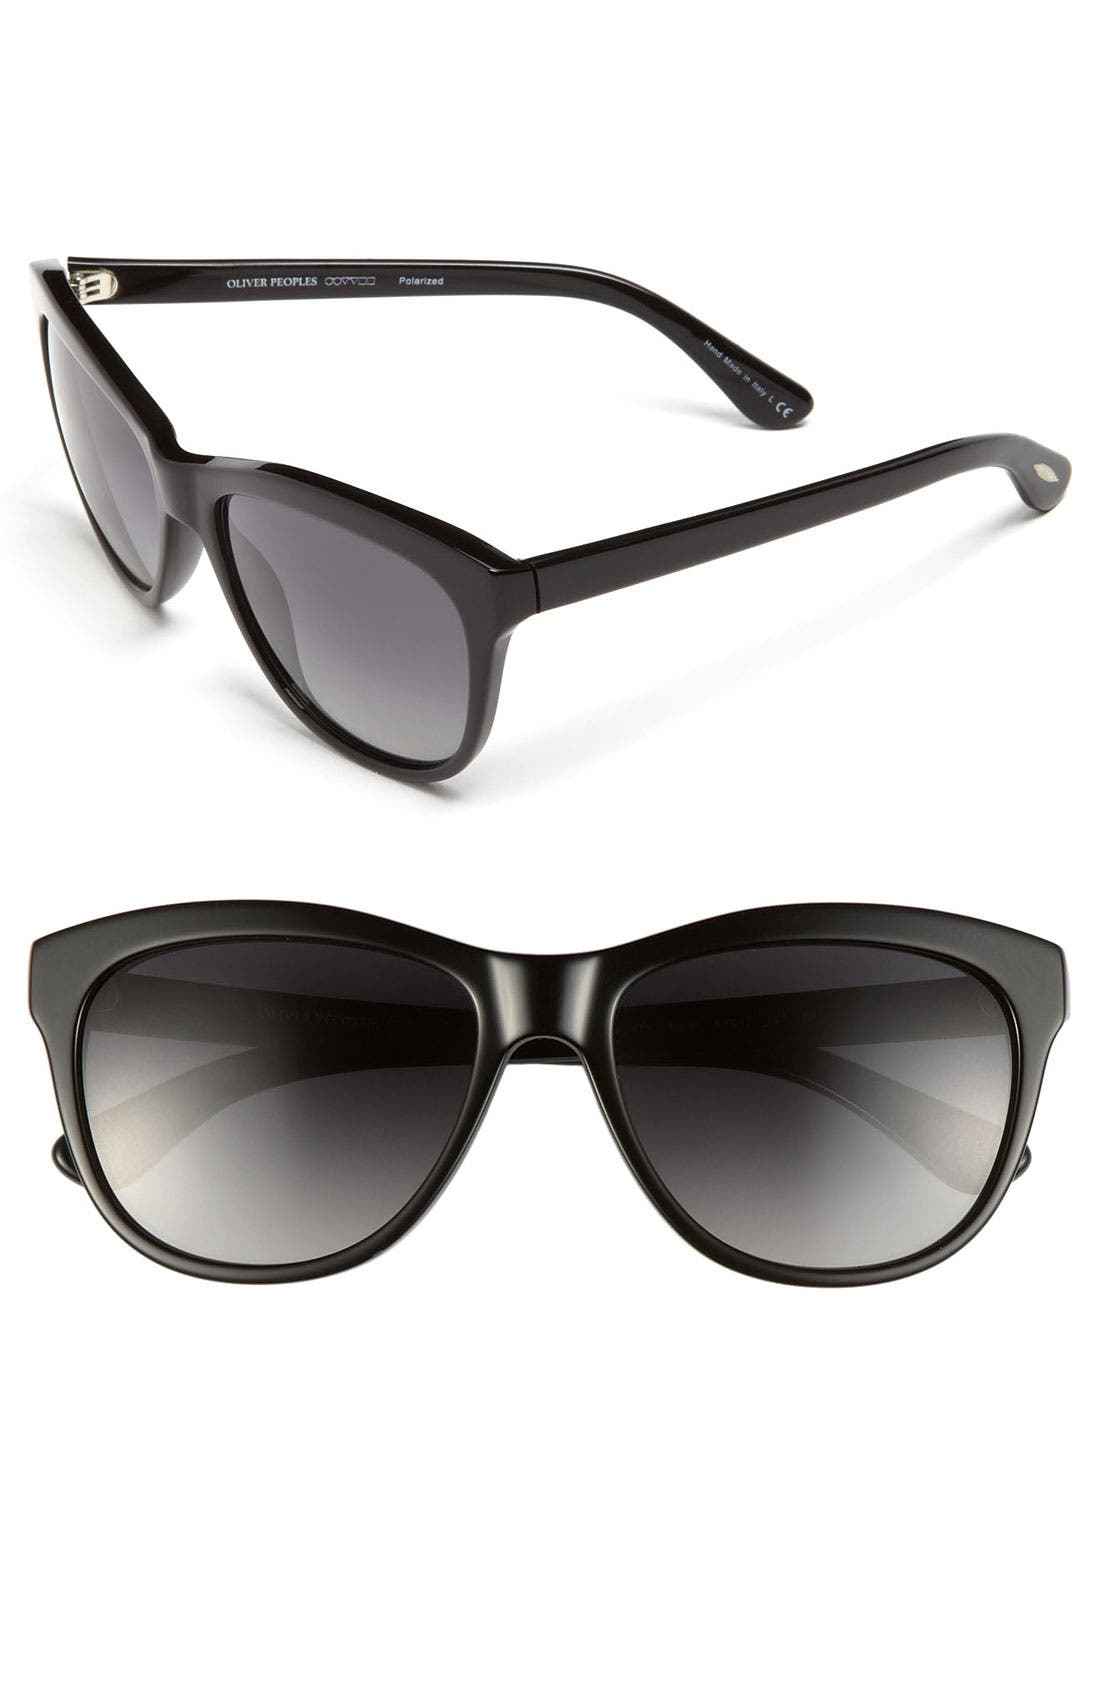 Alternate Image 1 Selected - Oliver Peoples 'Reigh' 57mm Sunglasses